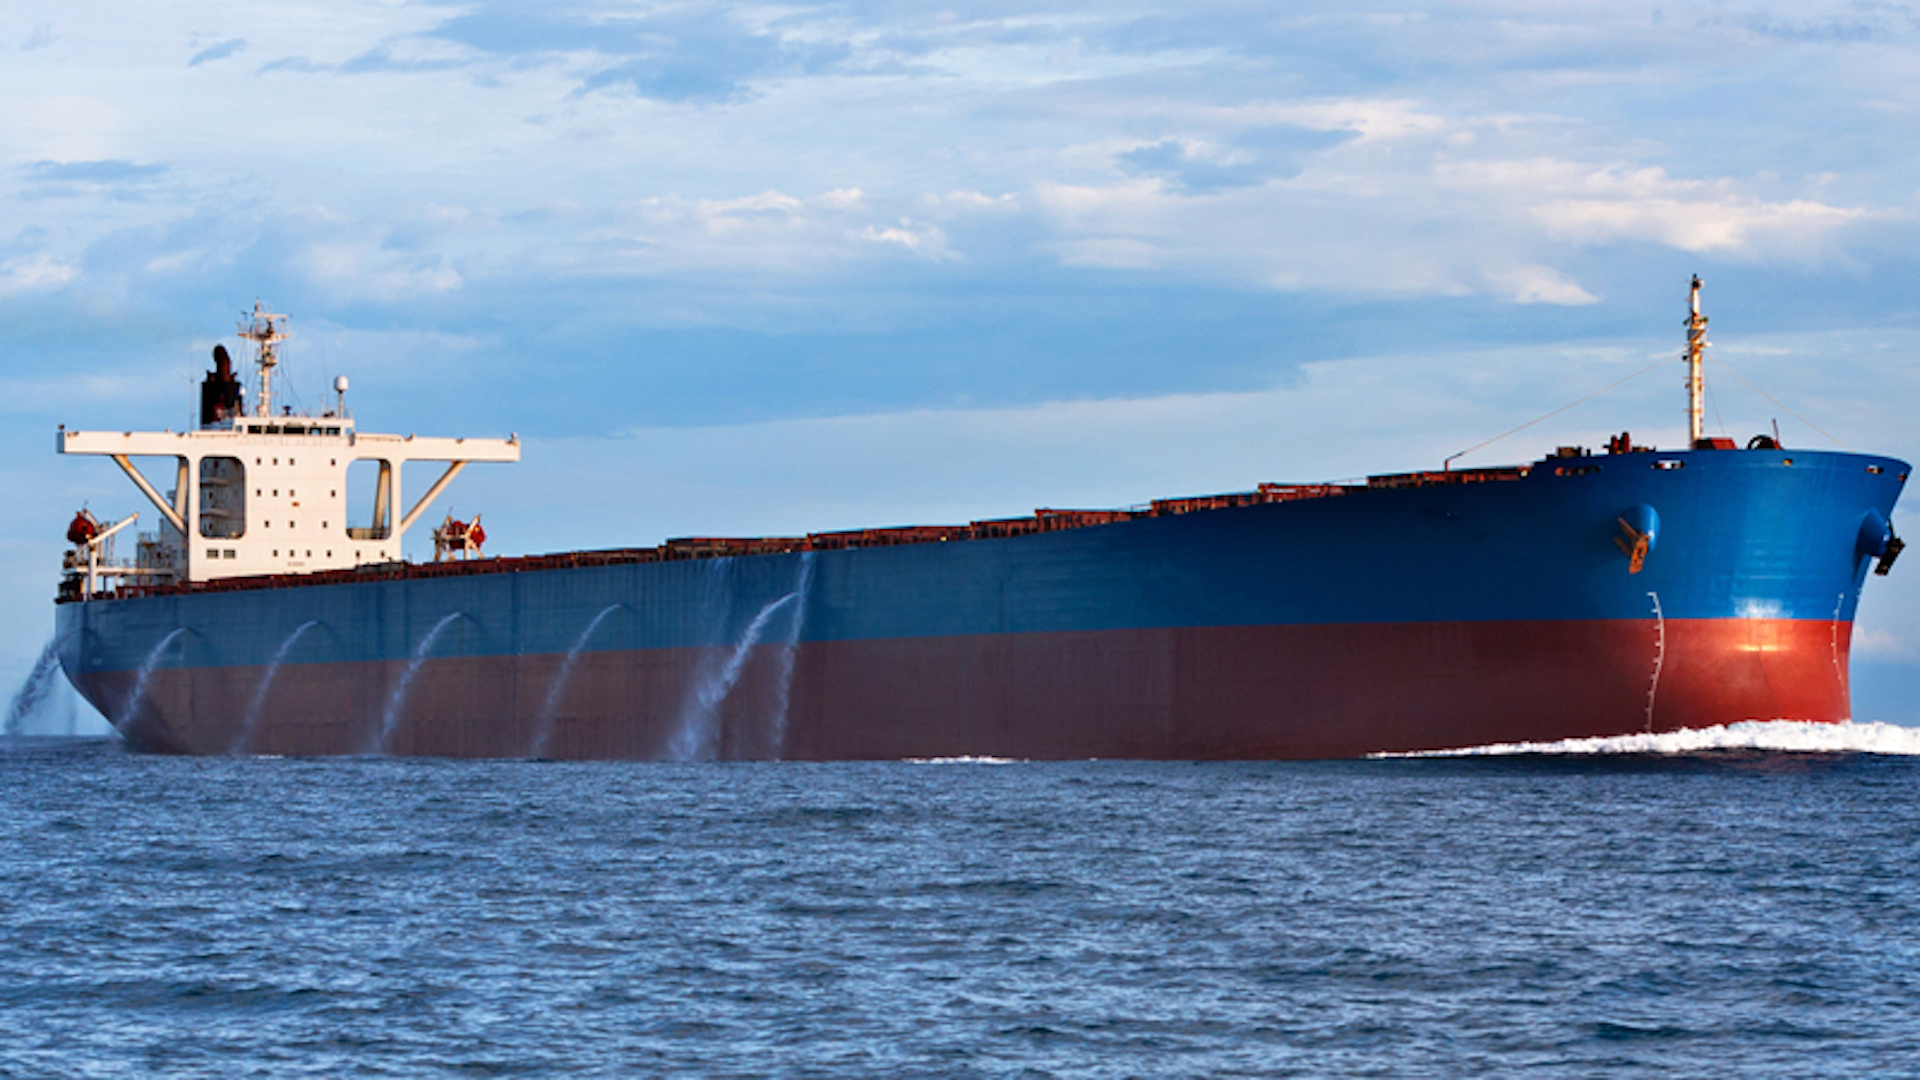 Policy Win: The Government Approved the Procedure for Inspection, Sampling, and Analysis of Water in Ports